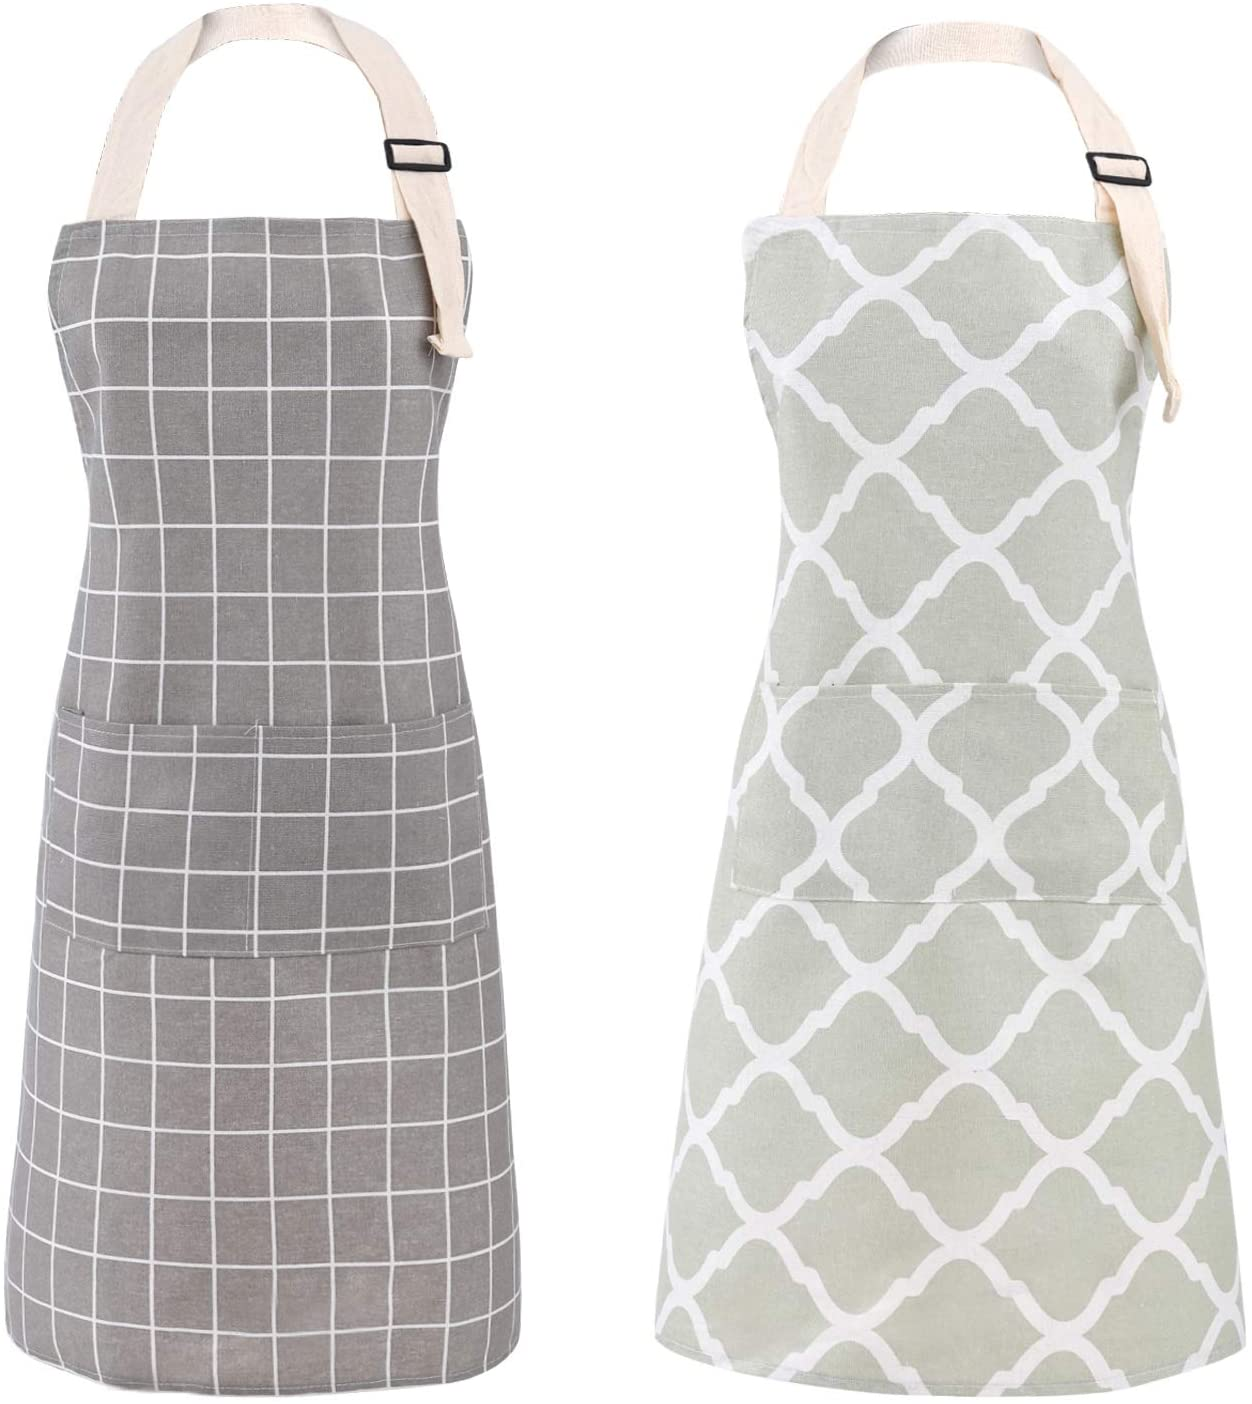 Tosewever 2 Pieces Cotton Linen Waterproof Bib Kitchen Apron with Pockets - Long Ties Adjustable Neck Strap - Unisex BBQ Cooking Drawing Crafting Aprons for Women Chef (Grey/Green, 2)